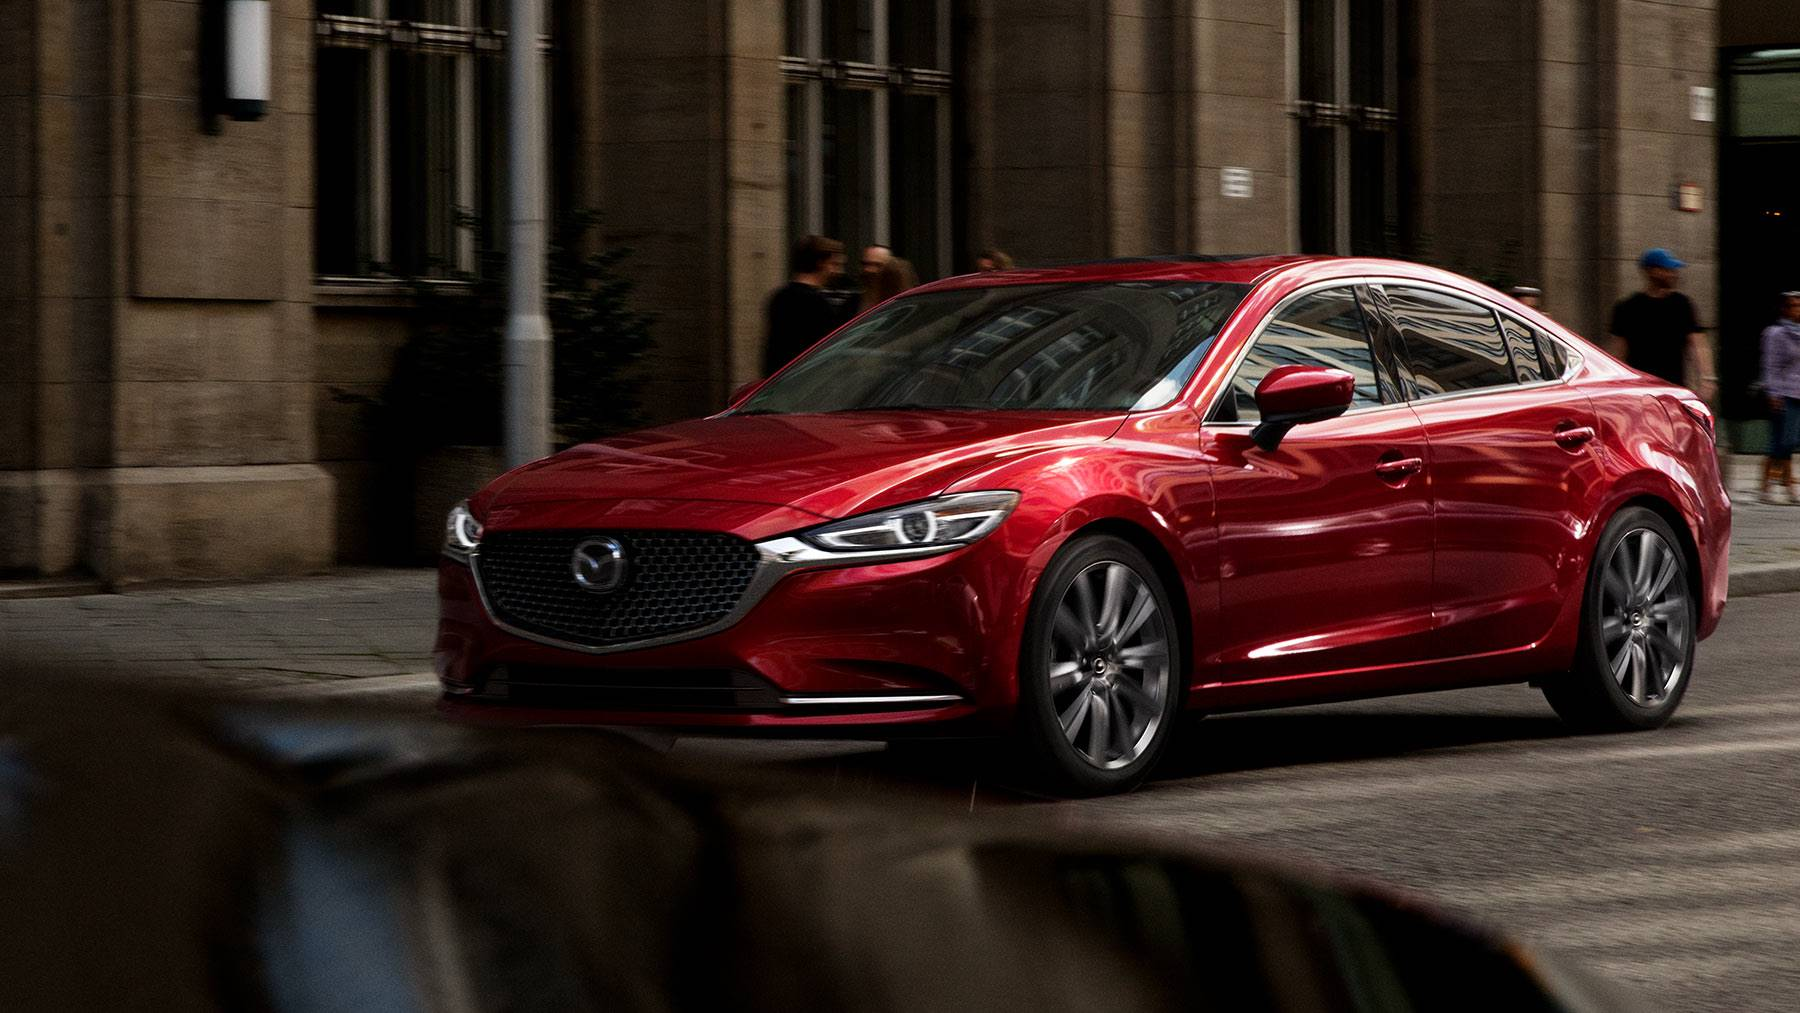 2018 Mazda6 Financing near Roseville, CA